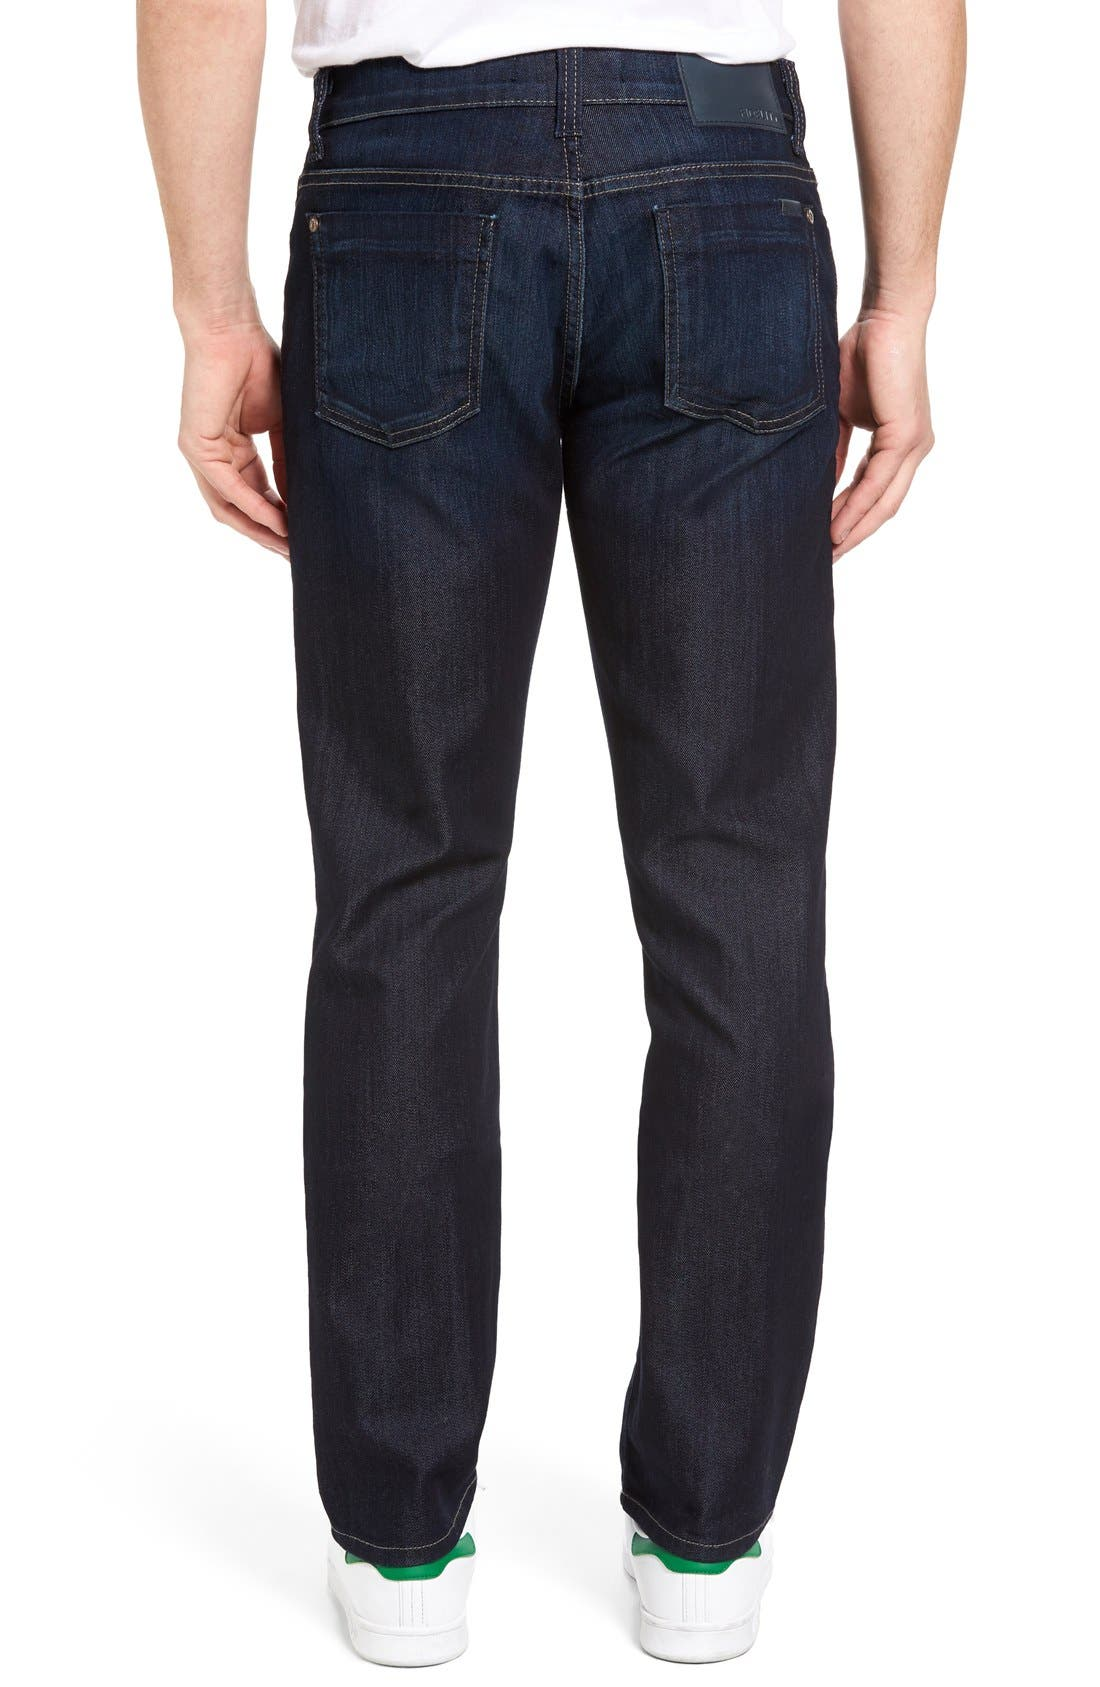 Impala Straight Leg Jeans,                             Alternate thumbnail 4, color,                             400